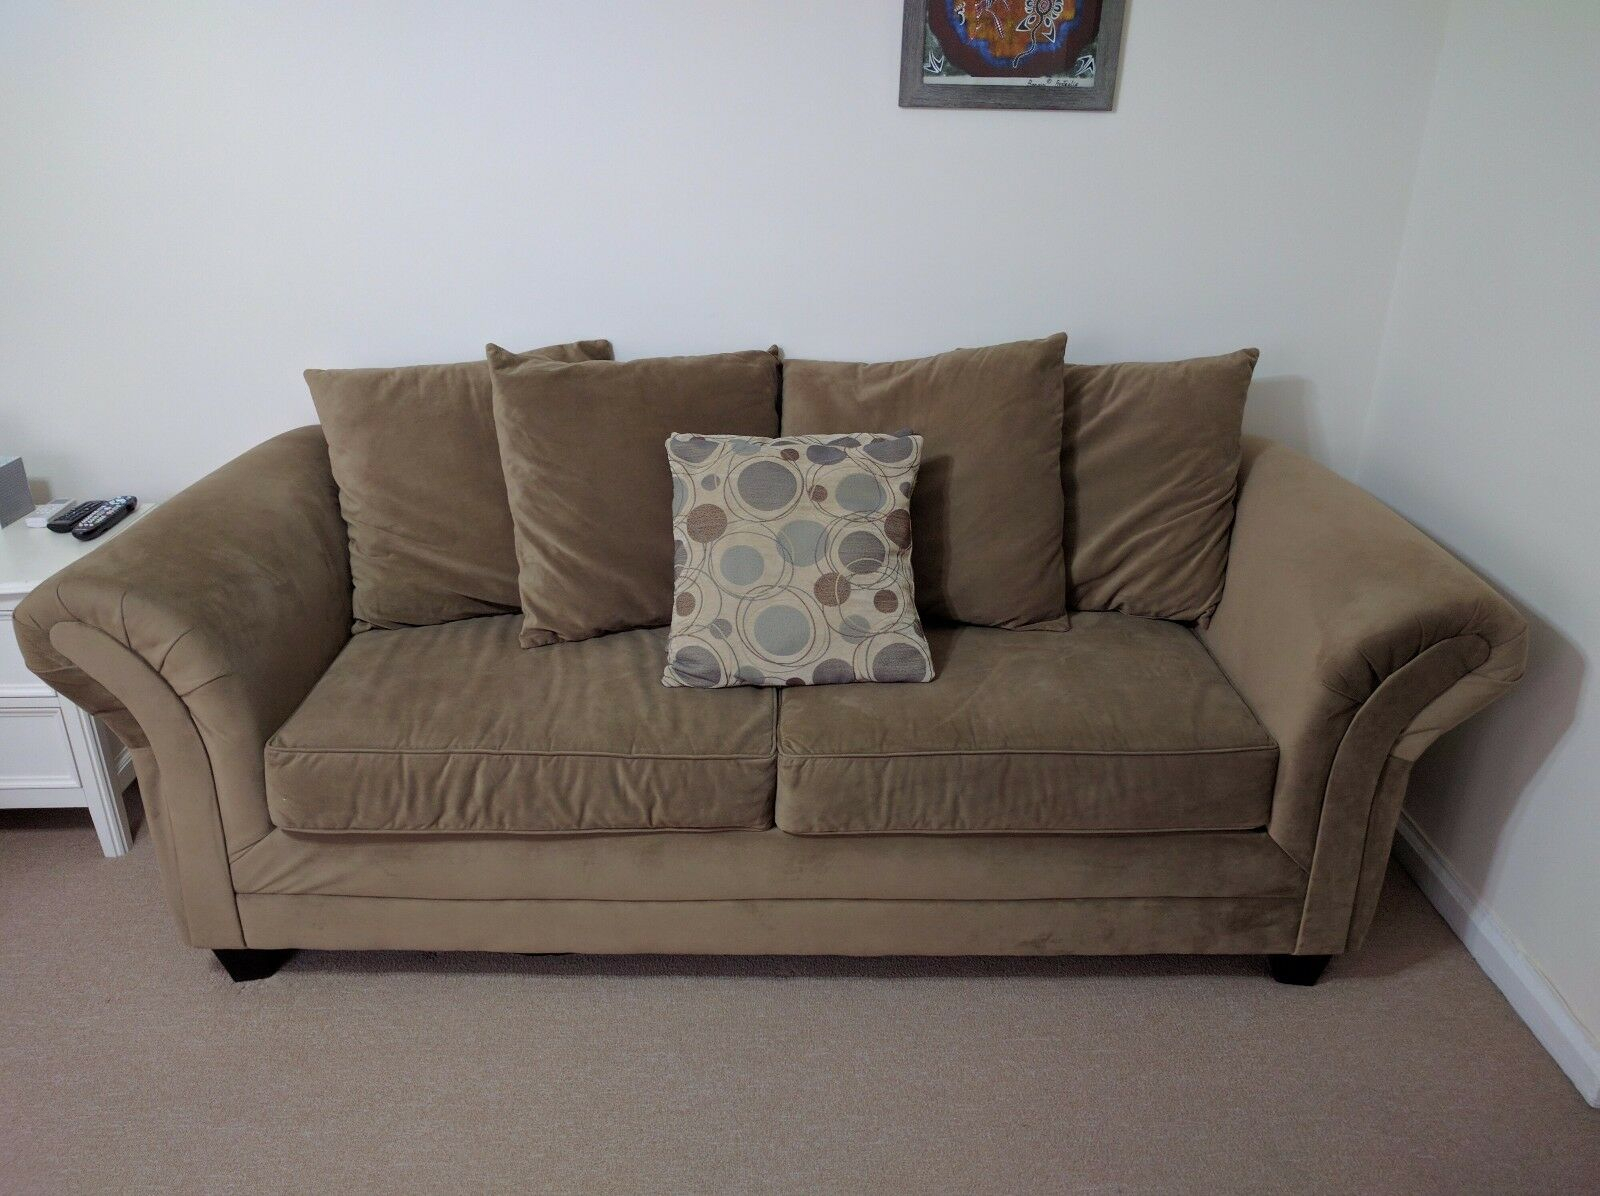 Bob'S Discount Furniture: Desert Sand Suede 3 Seater Sofa Throughout Symmetry Fabric Power Reclining Sofas (View 1 of 15)